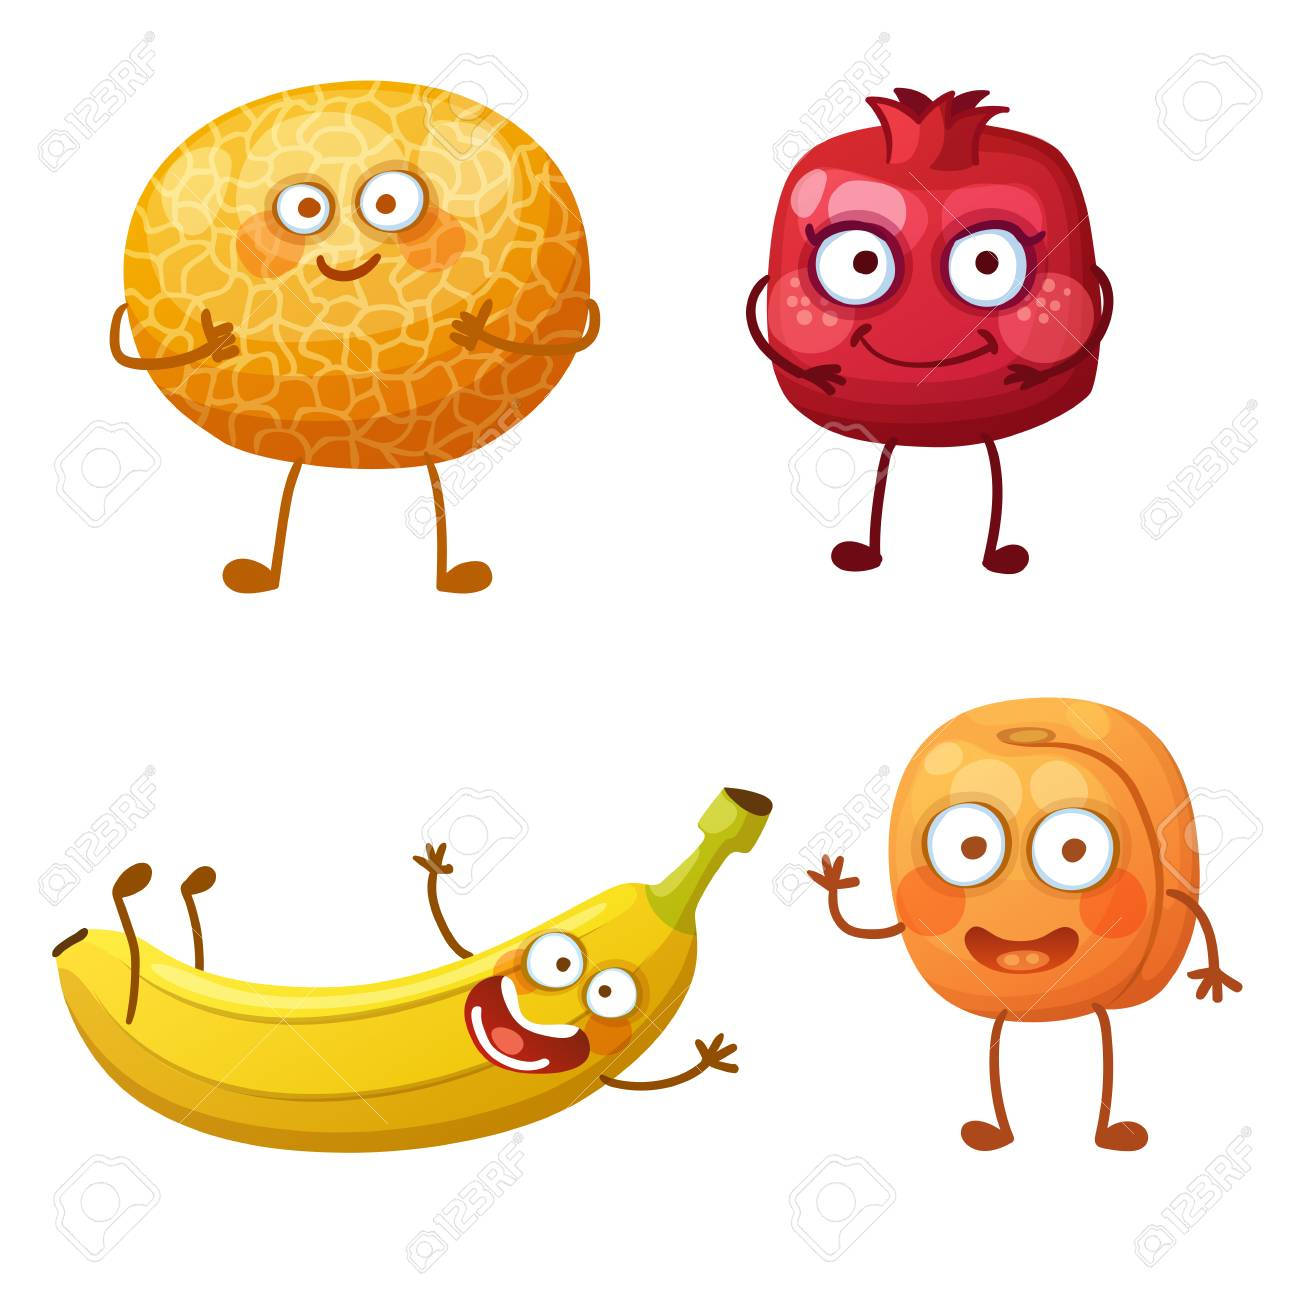 Funny fruit characters isolated on white background  Cheerful